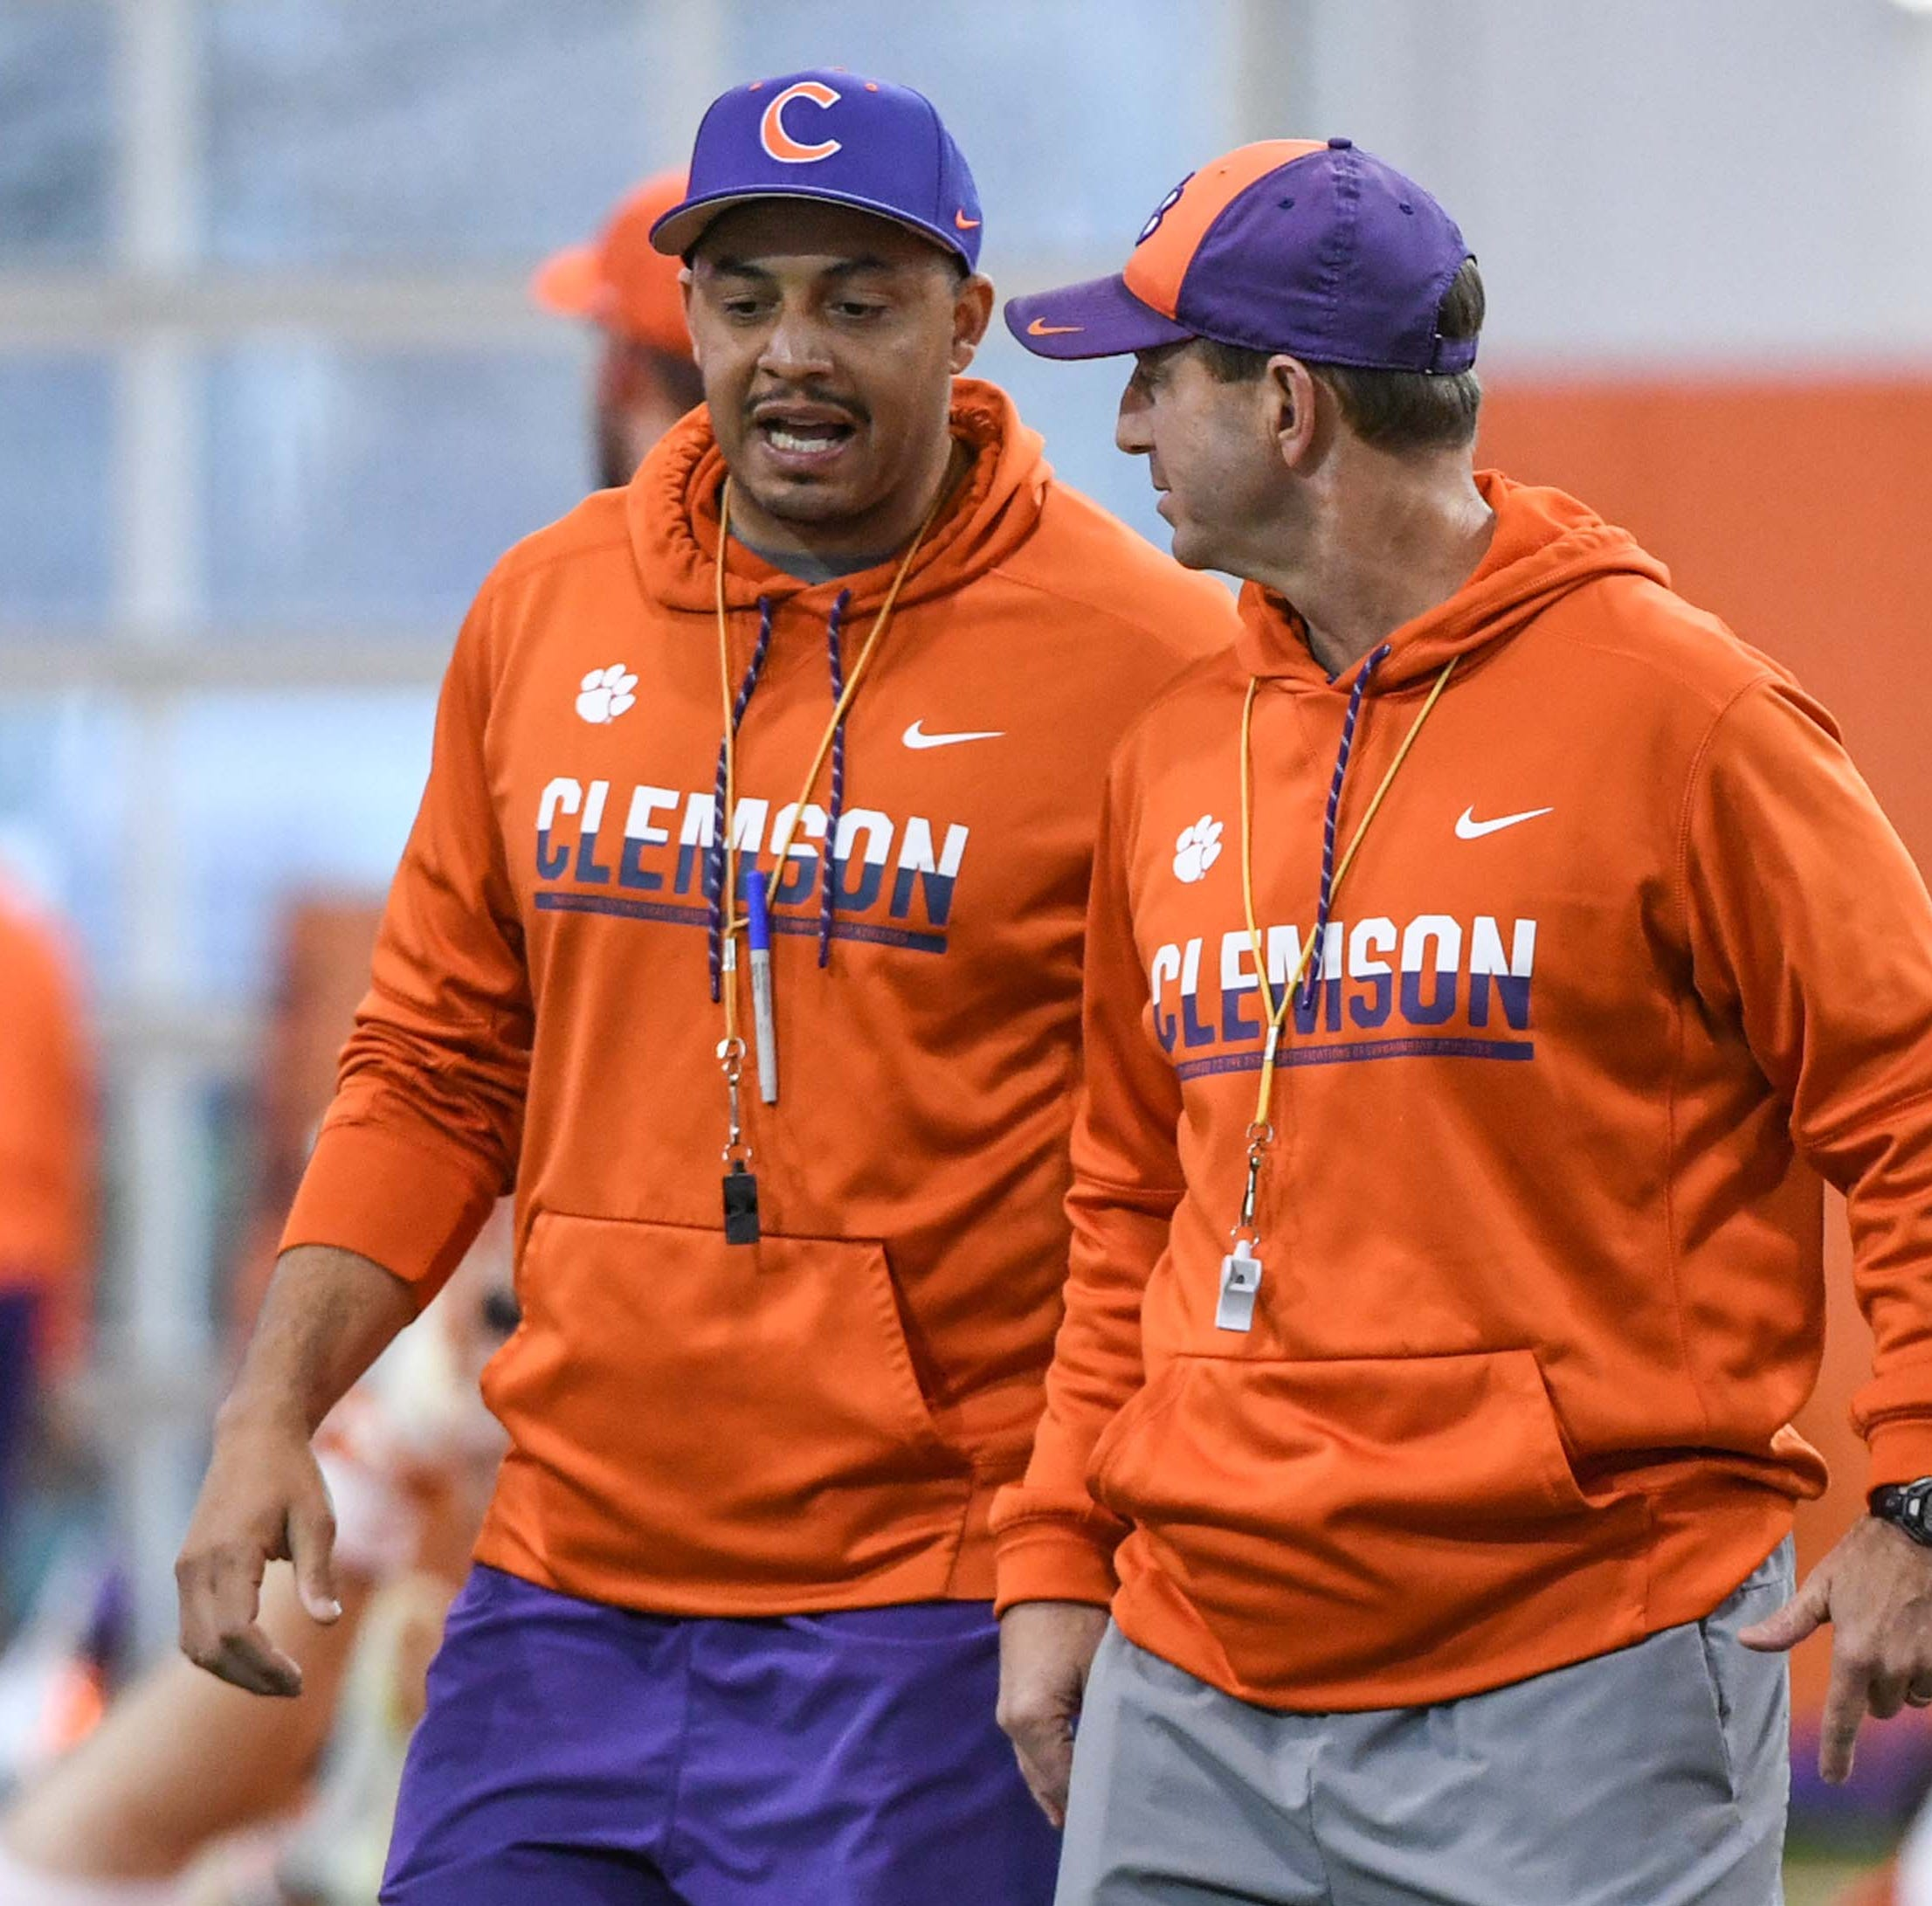 Clemson football: How to watch the Tigers' spring game on Saturday